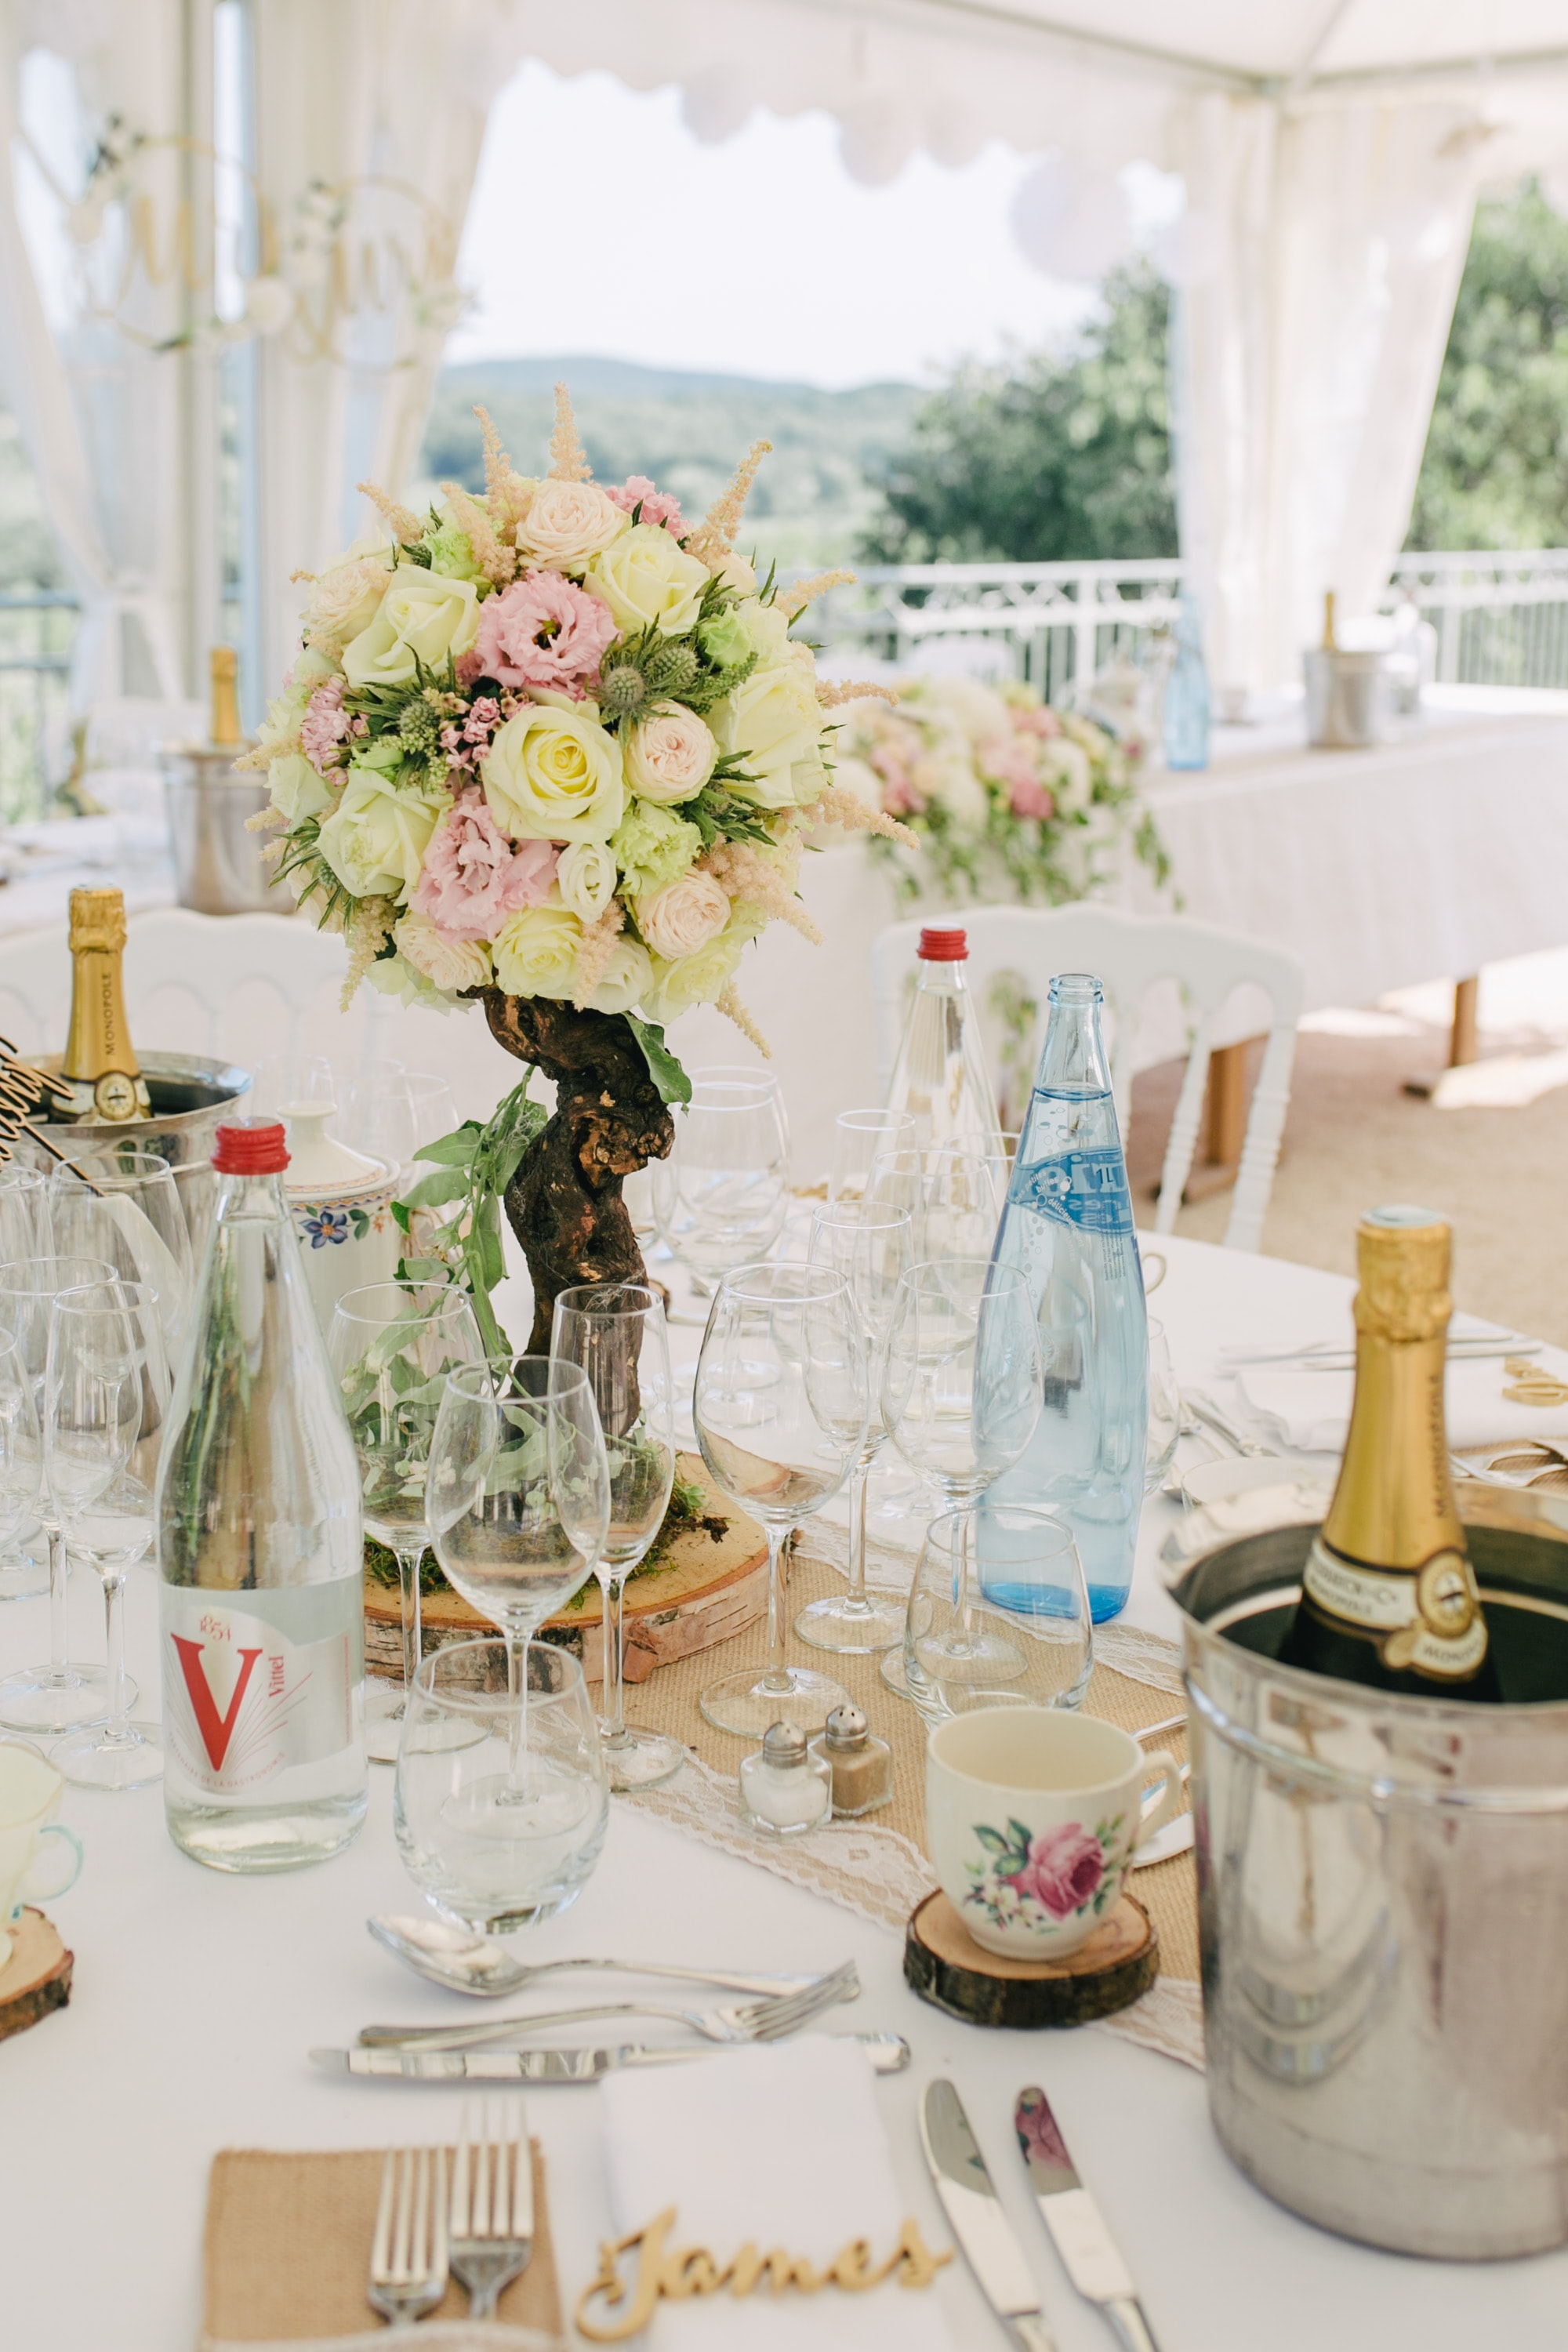 wine glass, bottles, and bouquet of flowers on table